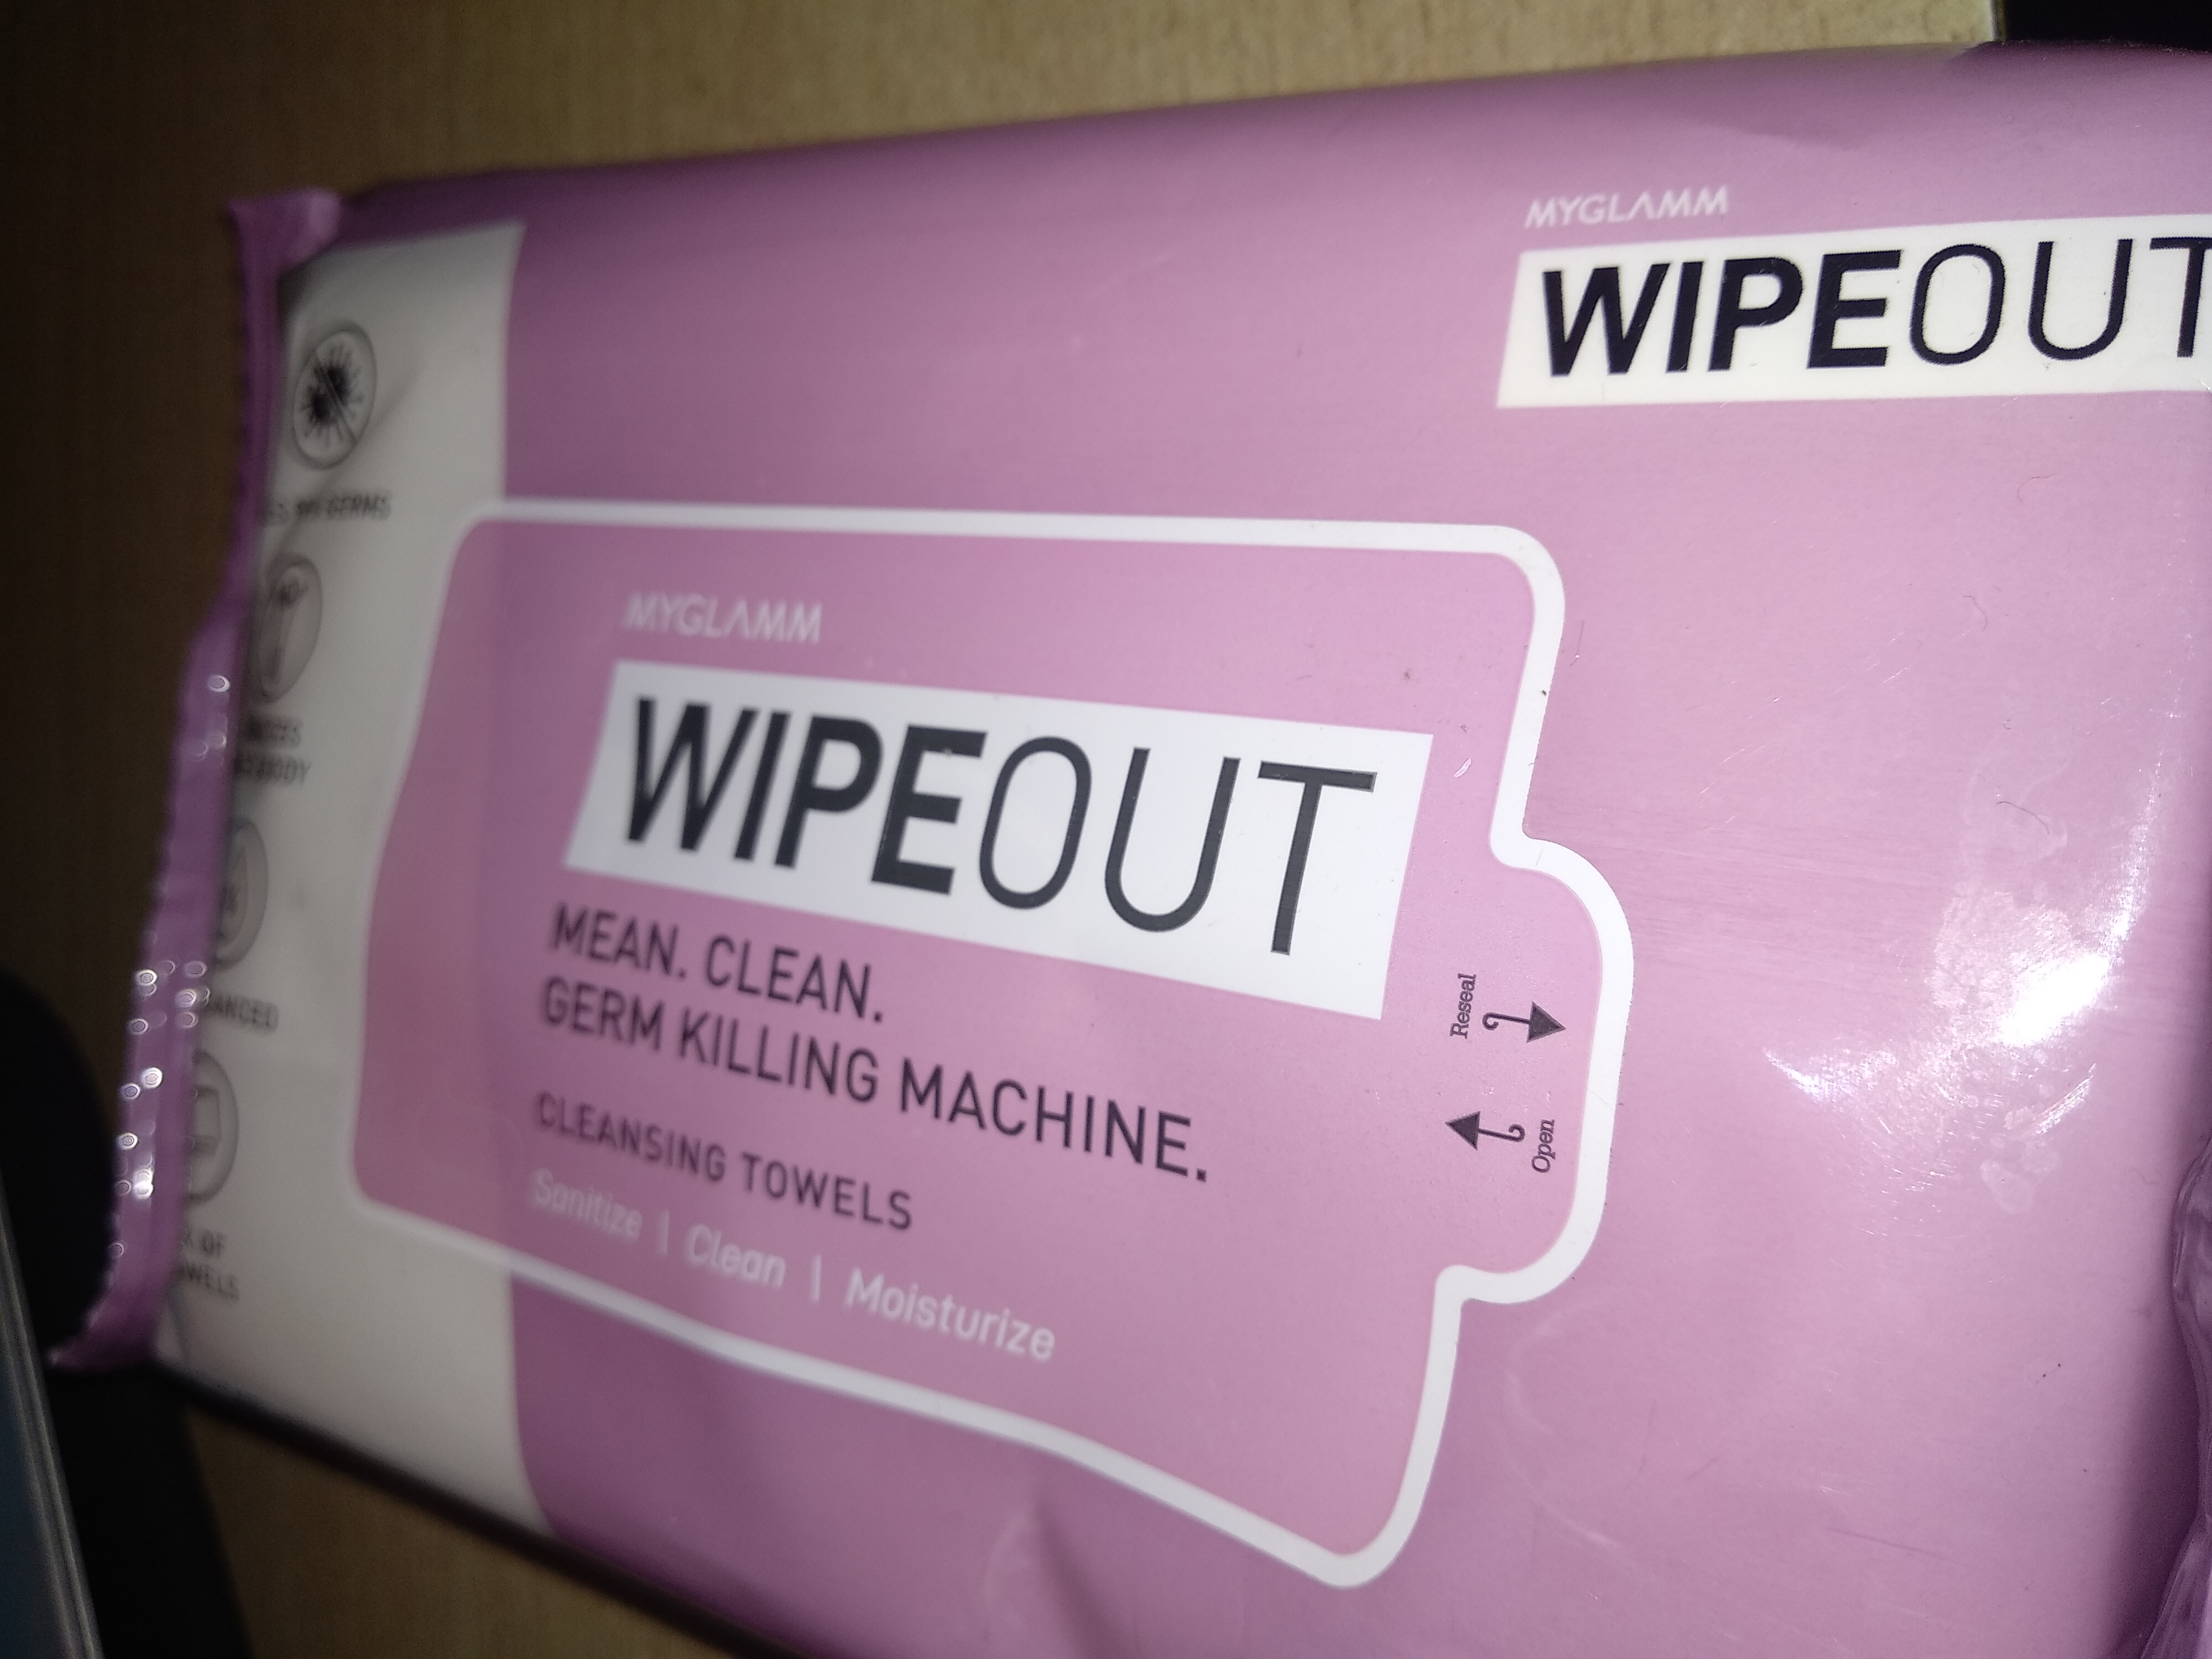 MyGlamm Wipeout Cleansing Towels-Handy and travel partner-By srishti_bhagat